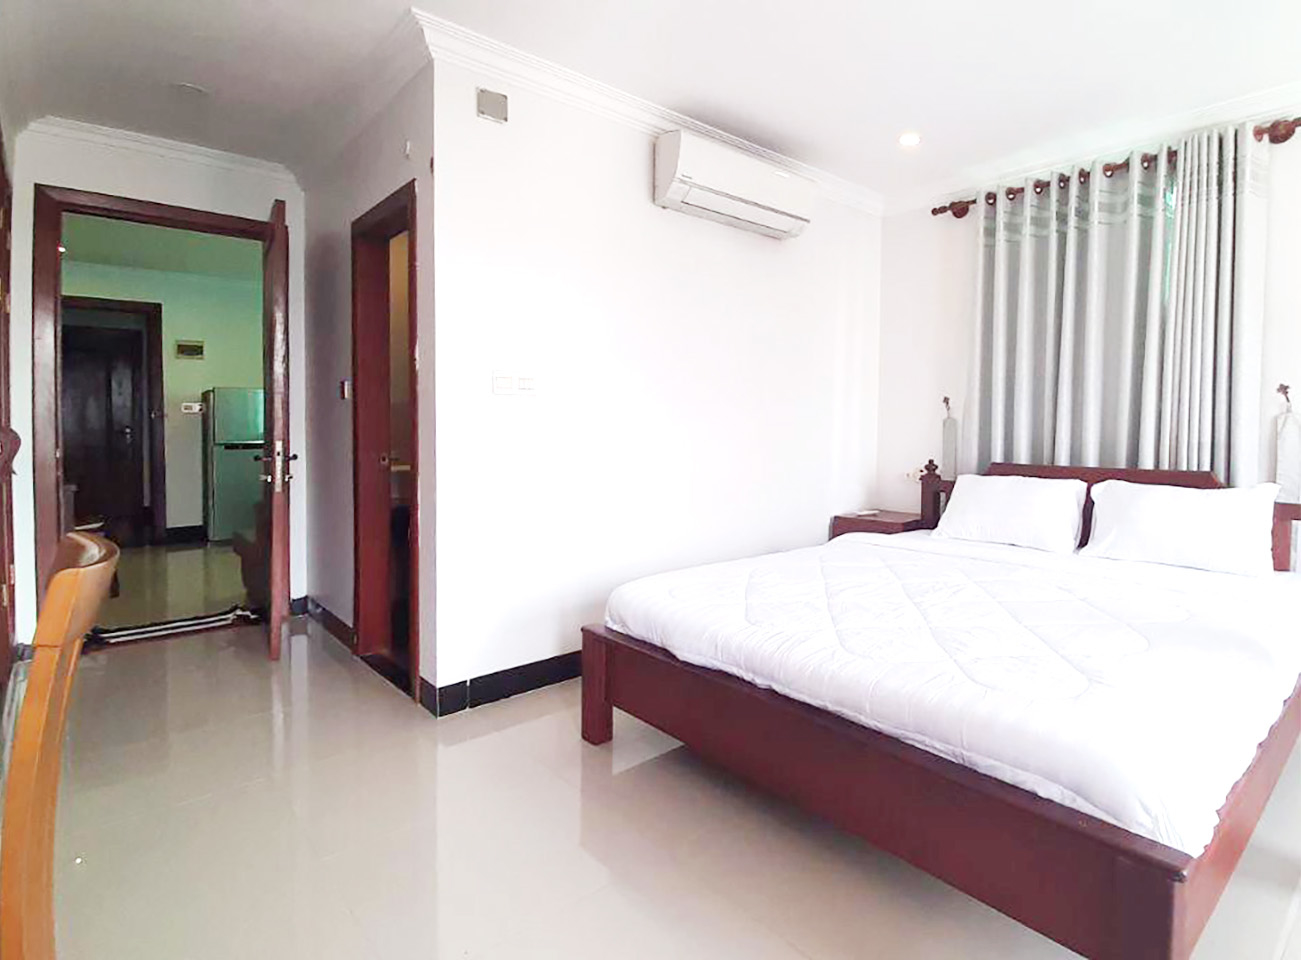 39 Beds whole apartment for rent near AEON Mall 2